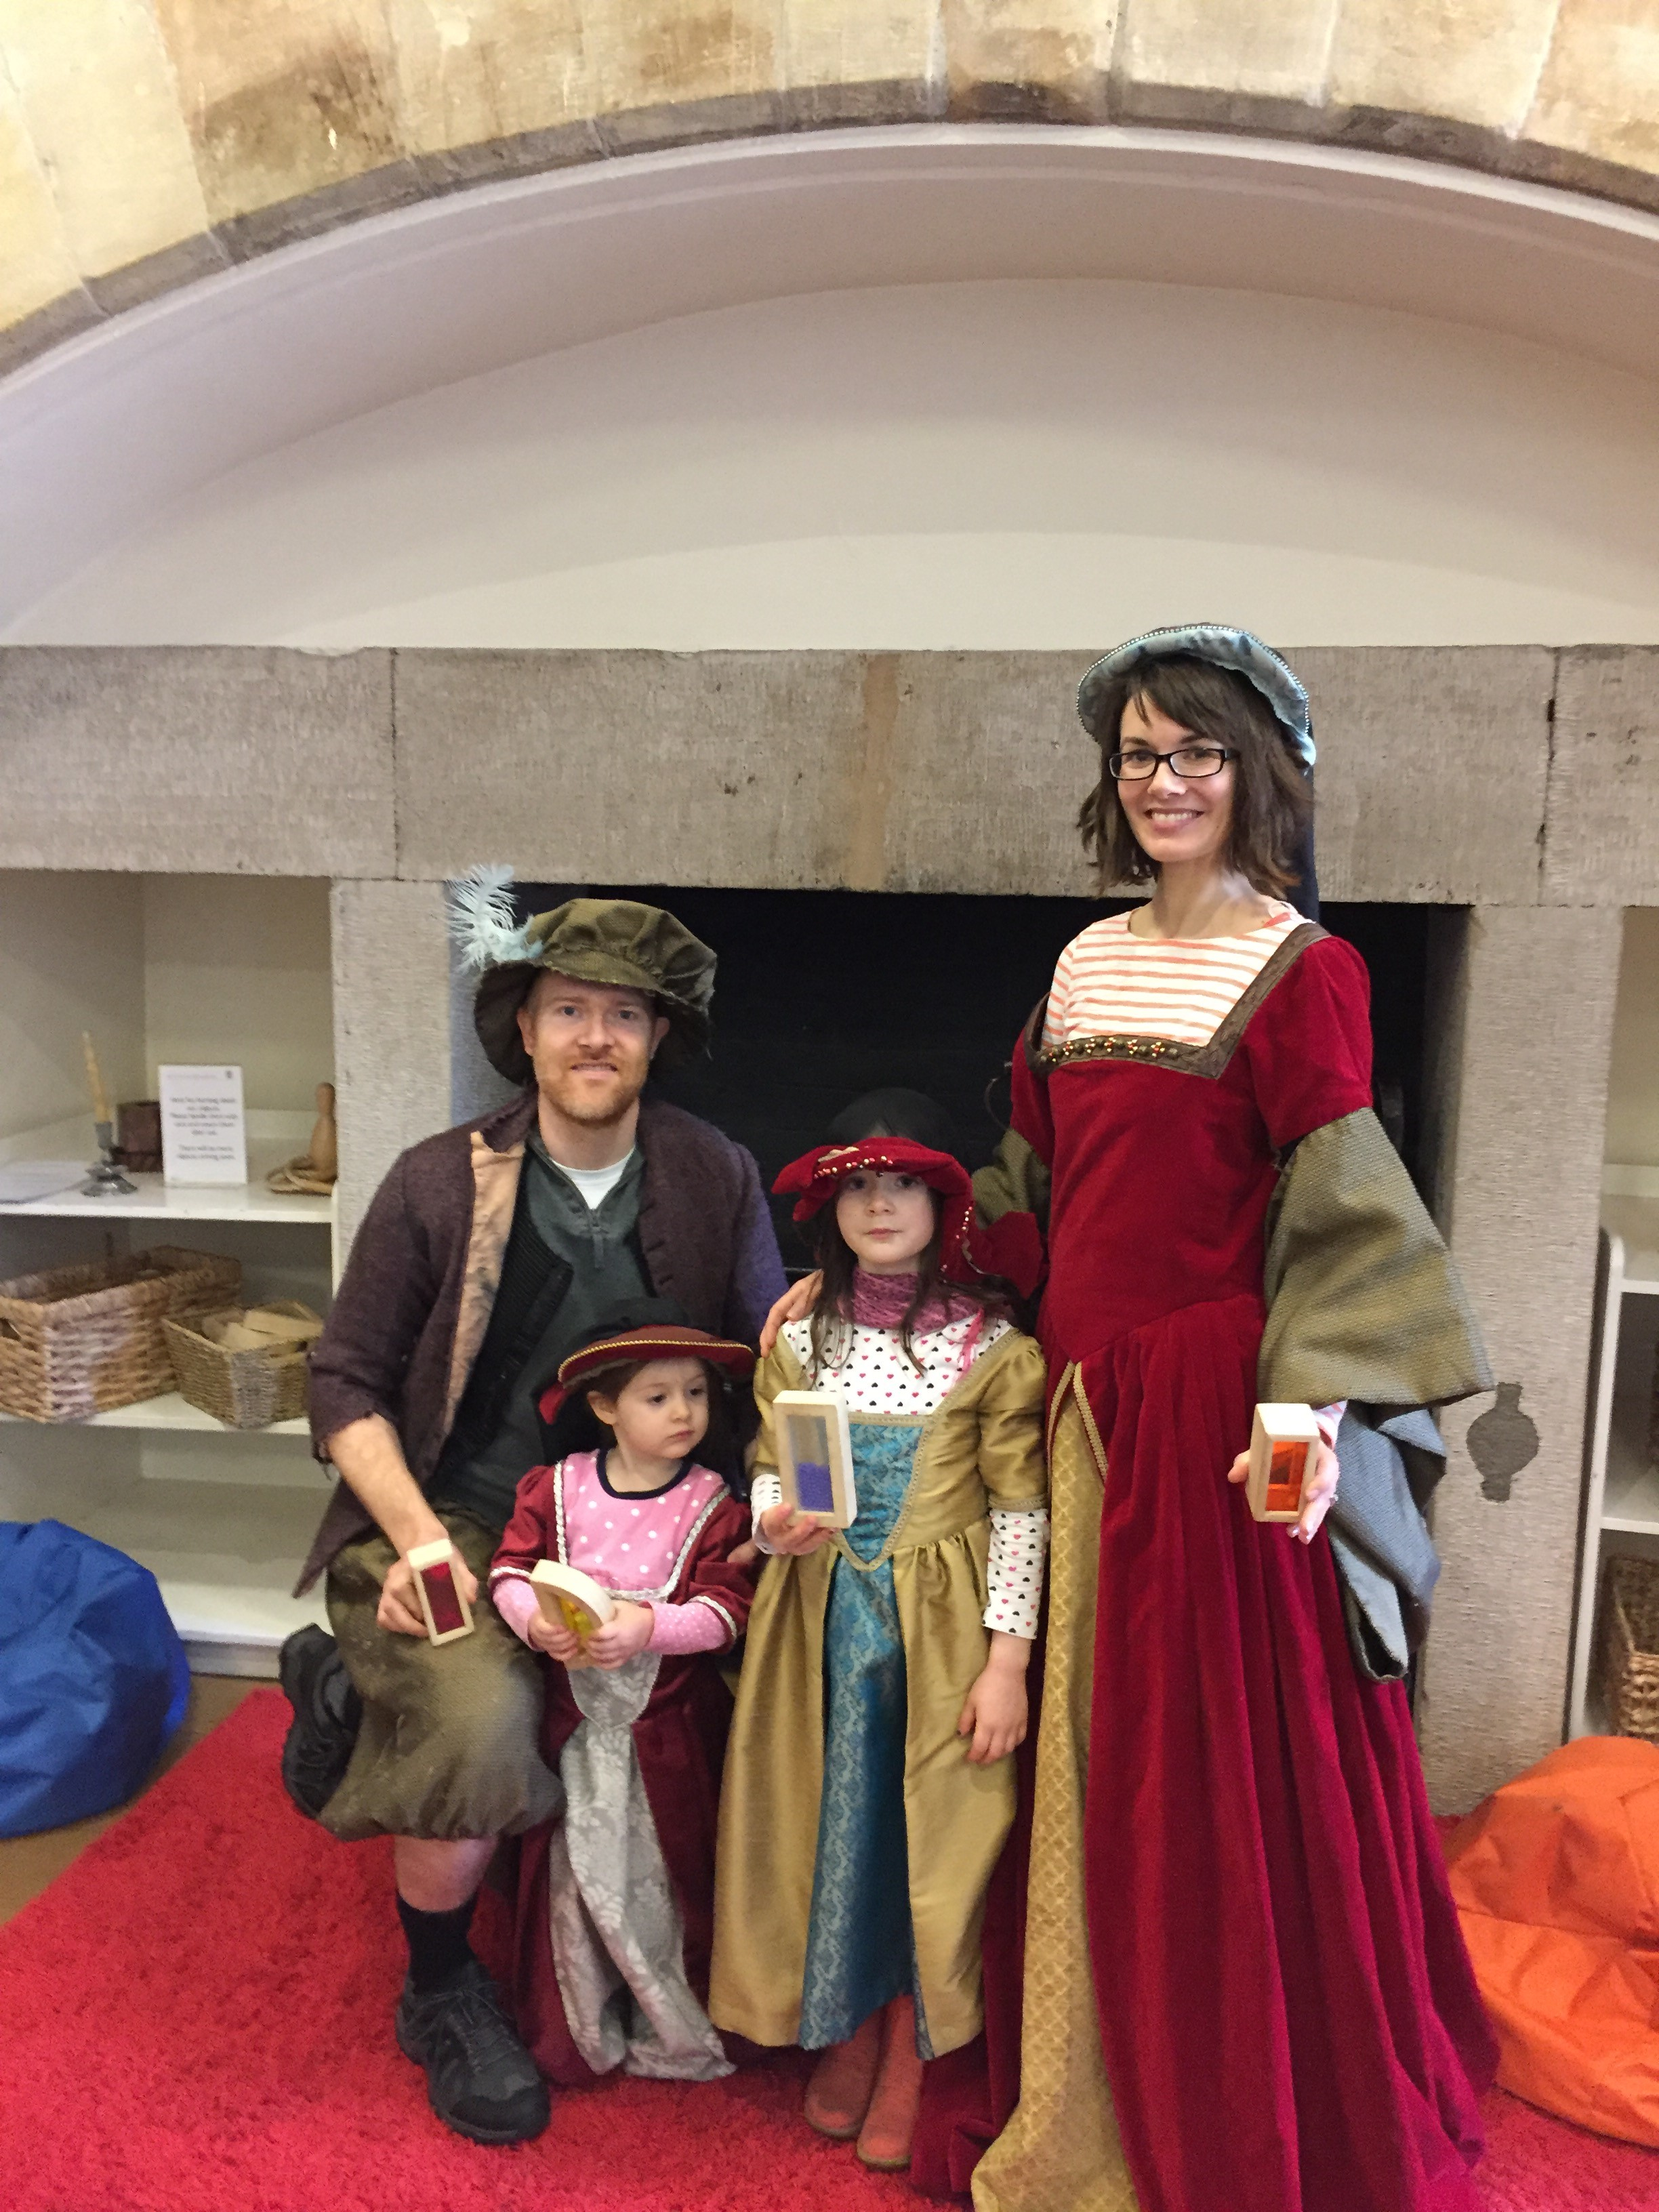 Our family dressing up in a castle on a recent visit to Scotland.